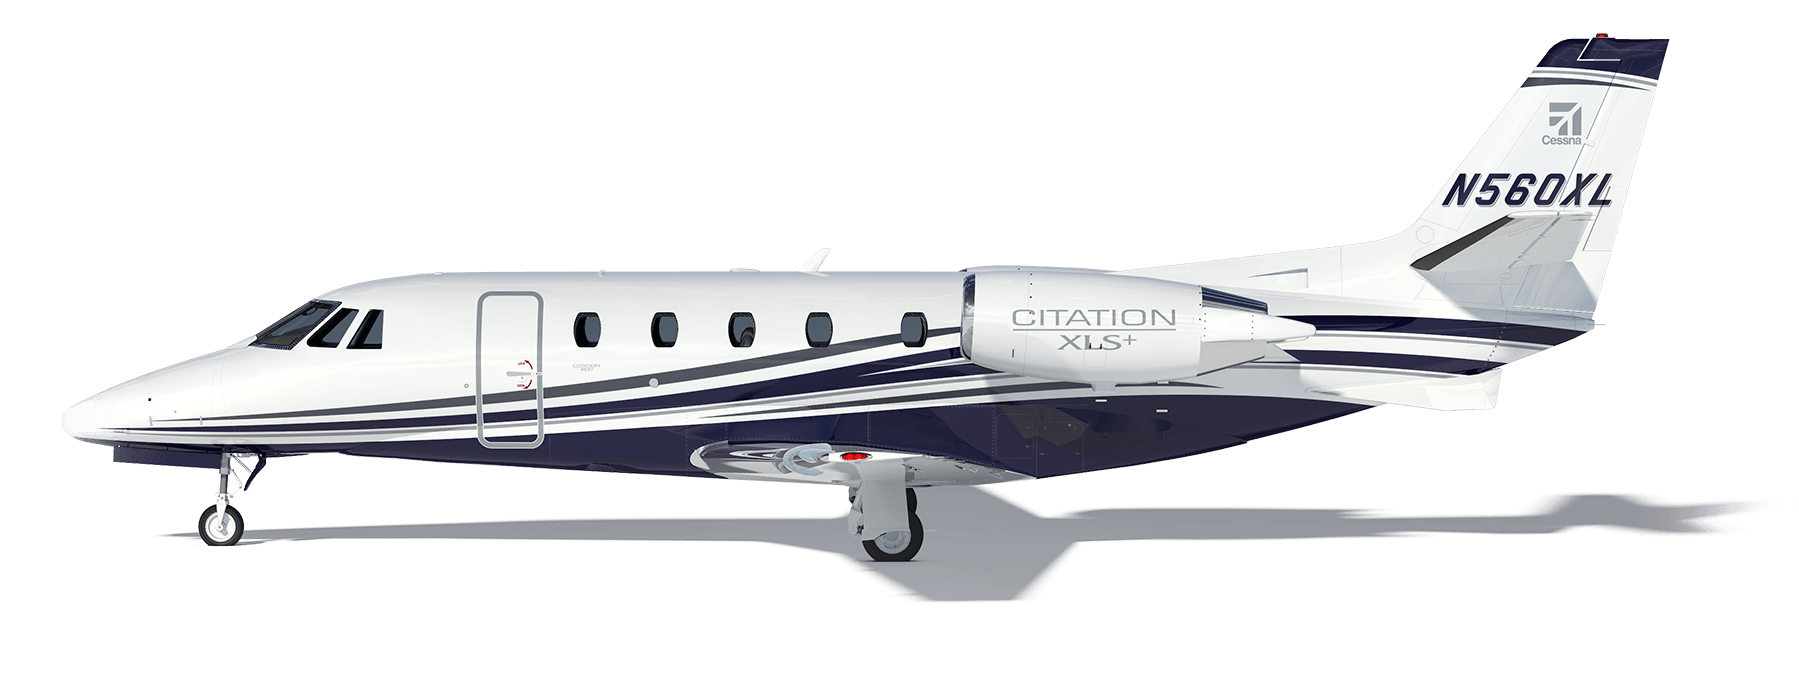 Citation xls airborne solutions malvernweather Choice Image